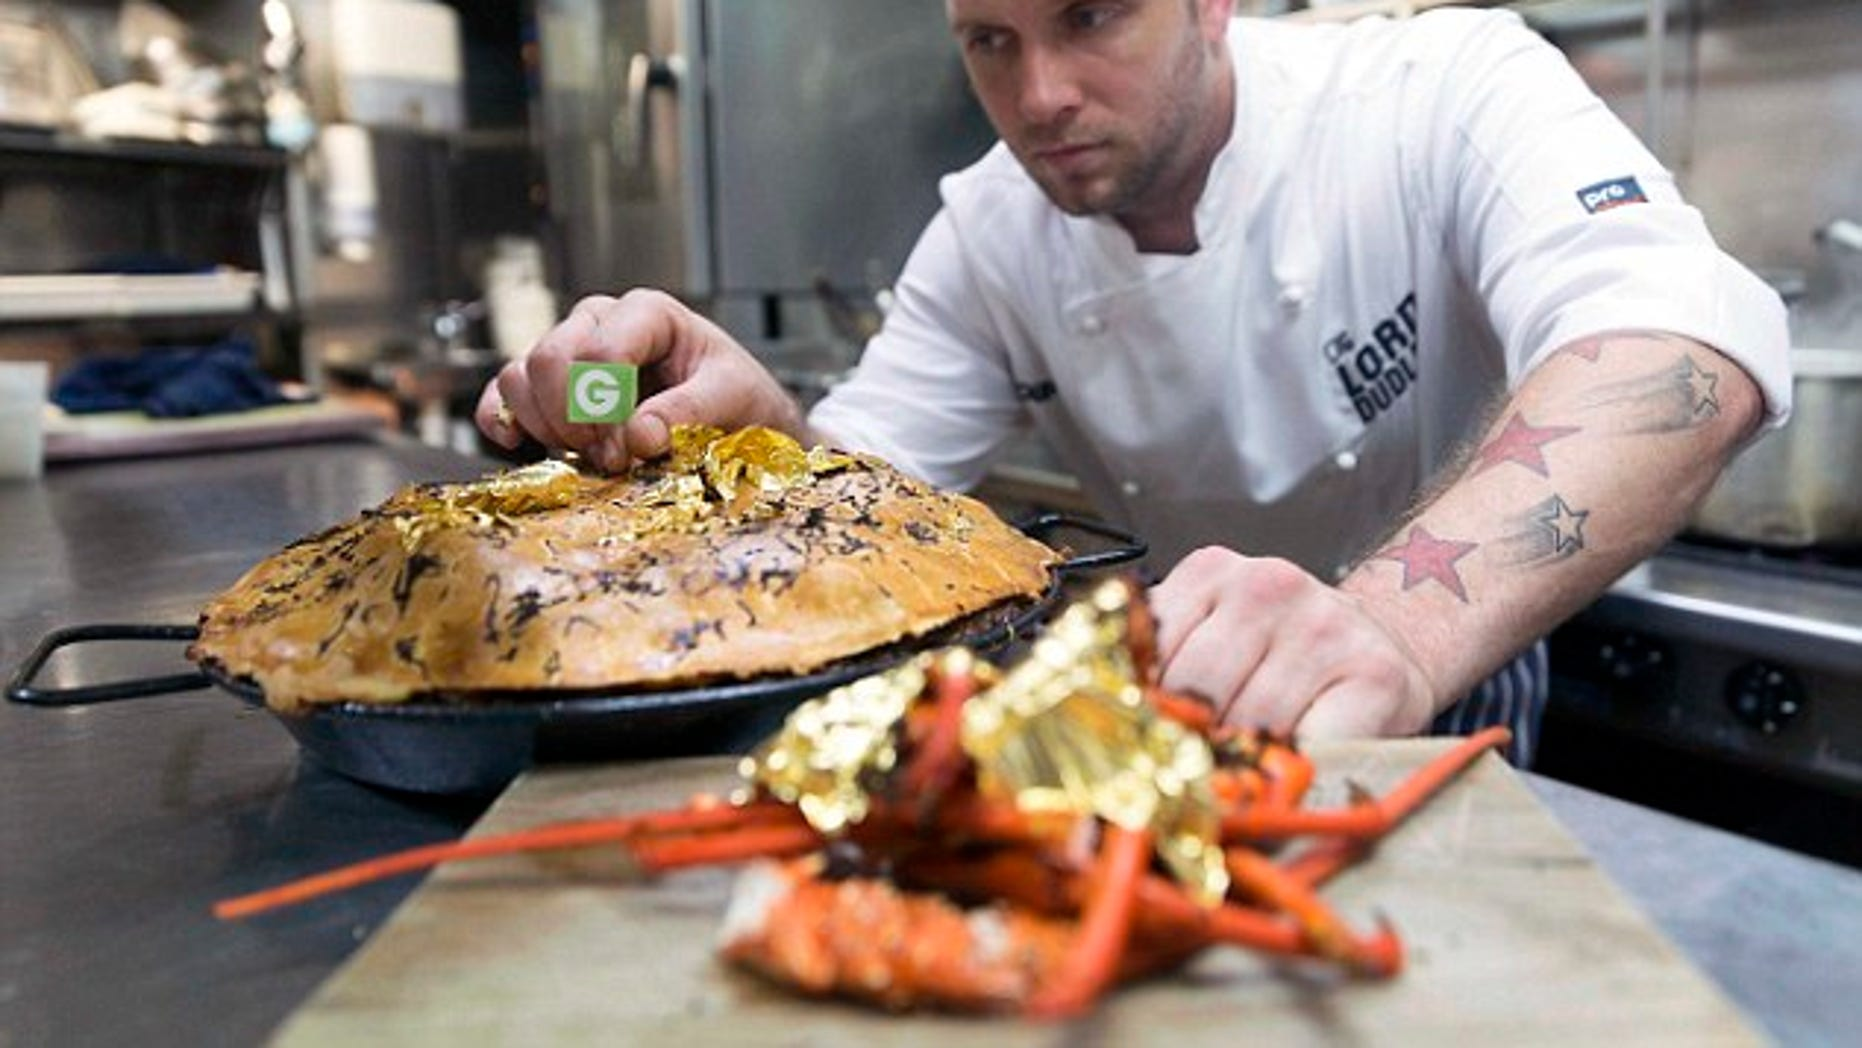 Executive chef Paul Medcalf puts the finishing touches on his five-figure creation.